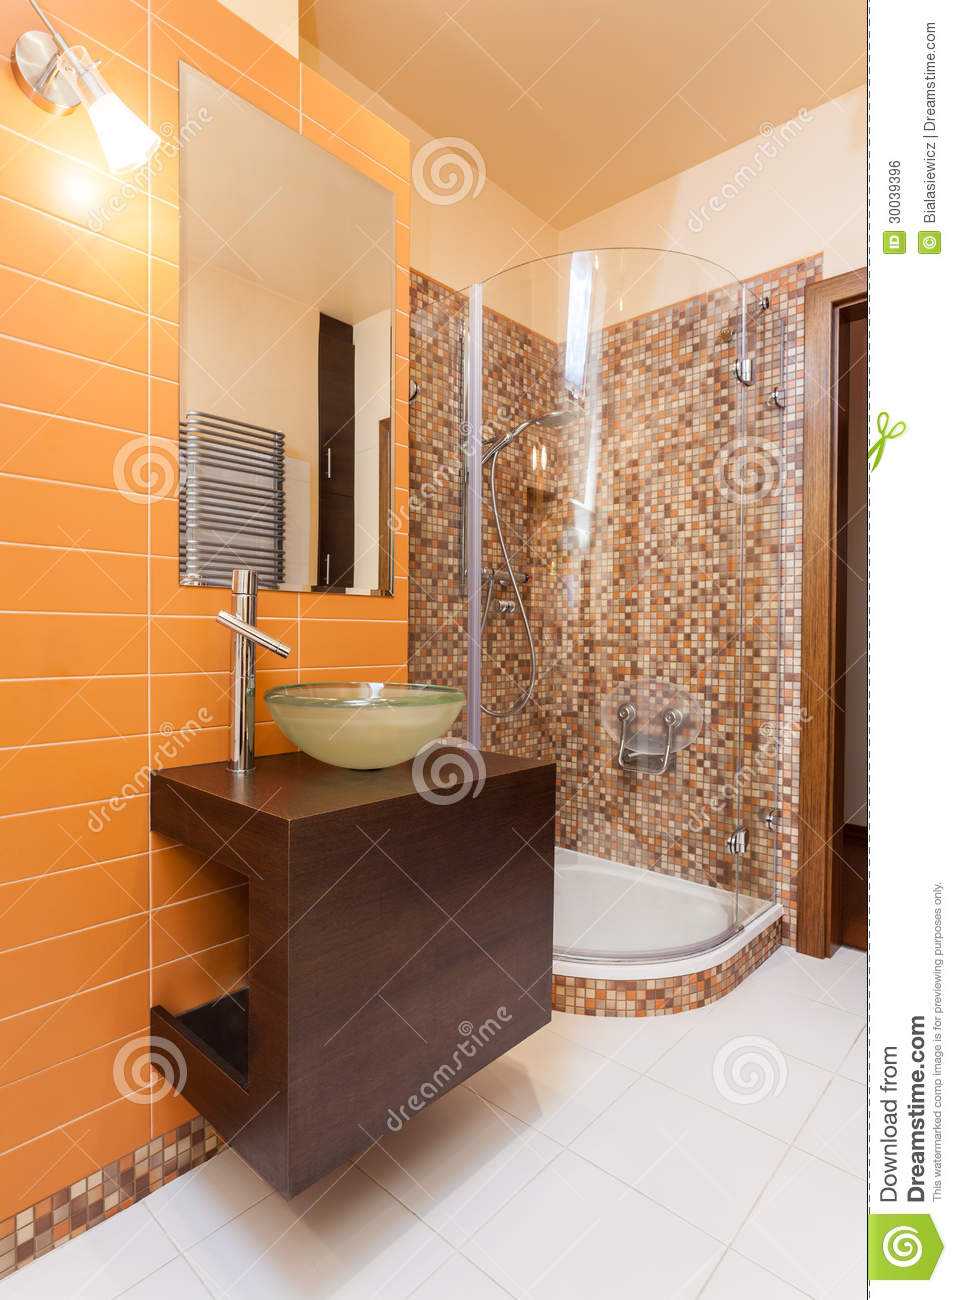 Classy House Orange Bathroom Royalty Free Stock Image